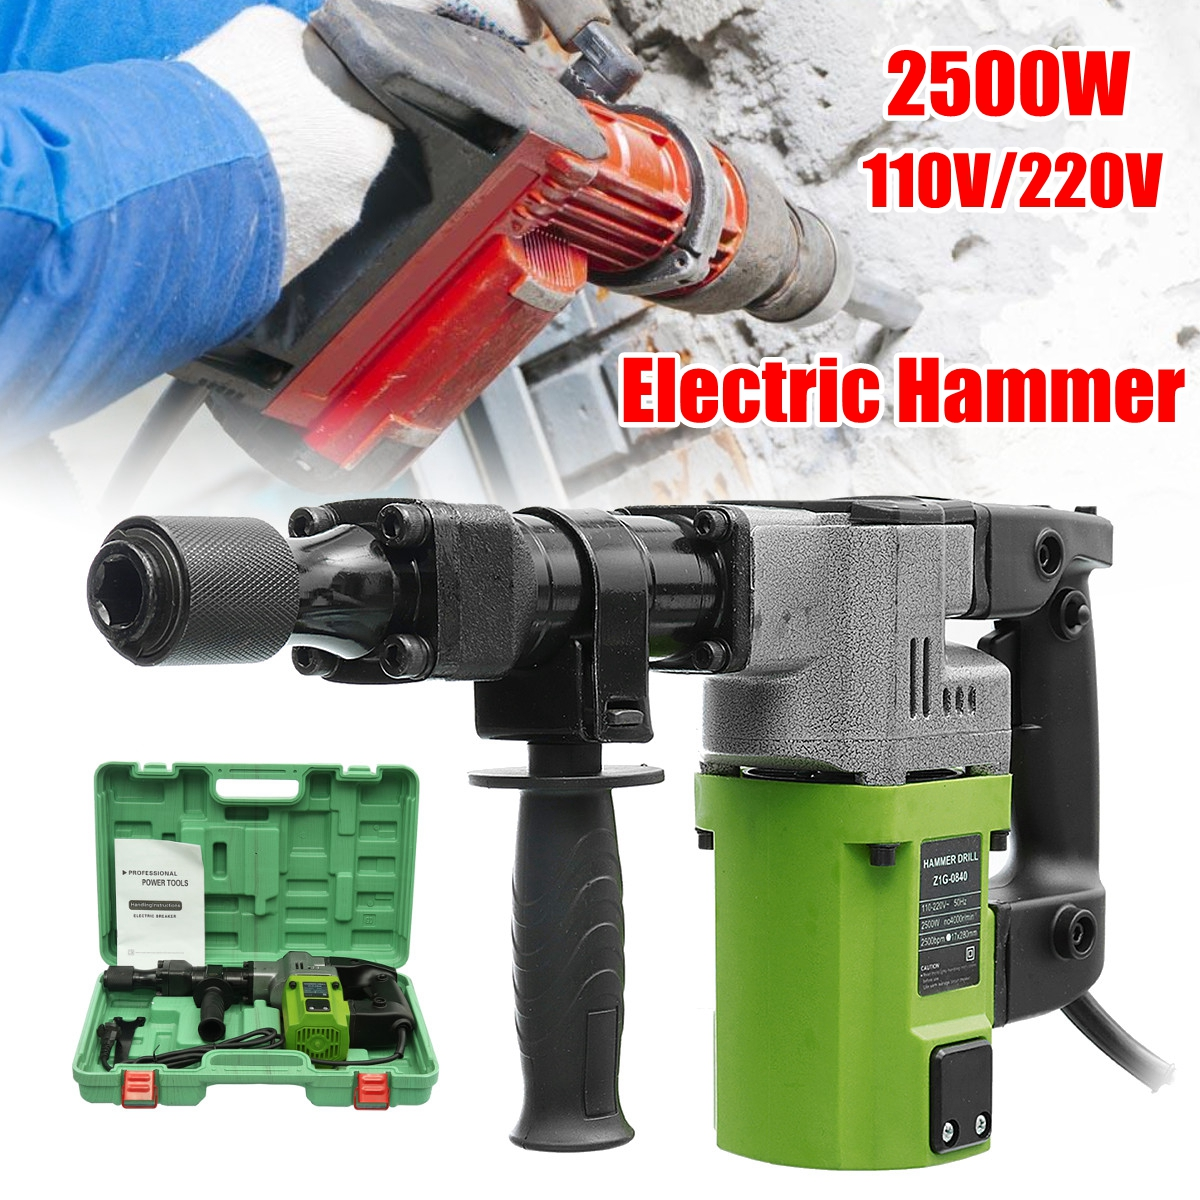 лучшая цена 110V/220V 2500W Electric Demolition Jack Hammer Rotary Jackhammer Electric Concrete Drill 2500BPM 4000r/min